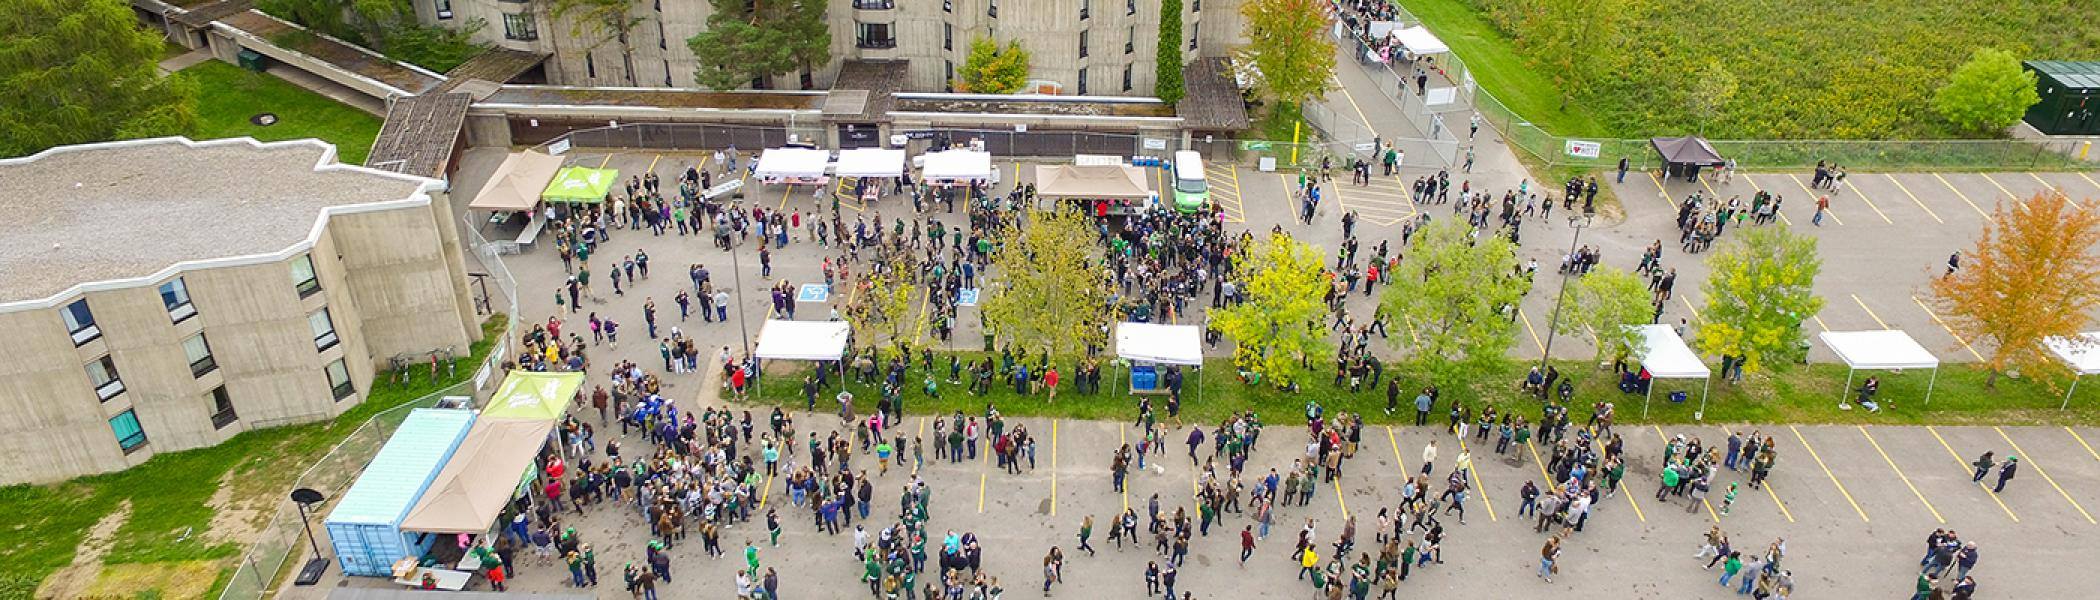 Aerial view of the beer garden in a parking lot with lots of people walking about